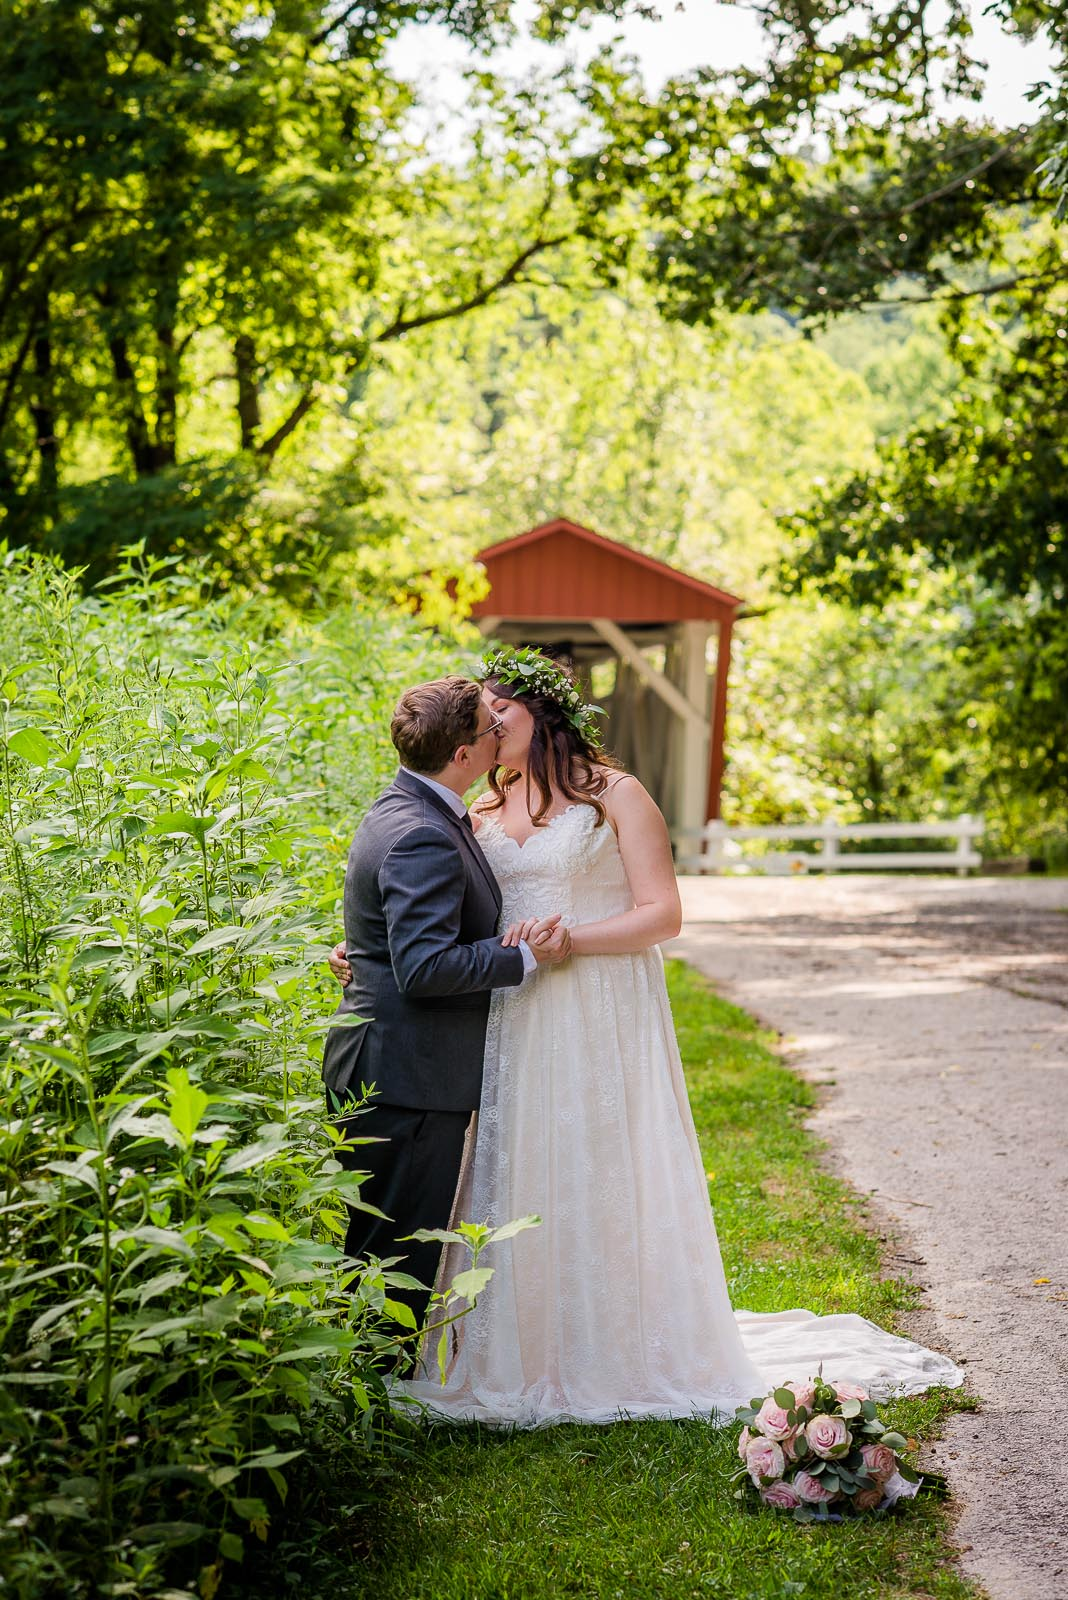 Eric_and_Christy_Photography_Blog_2018_Portraits-23